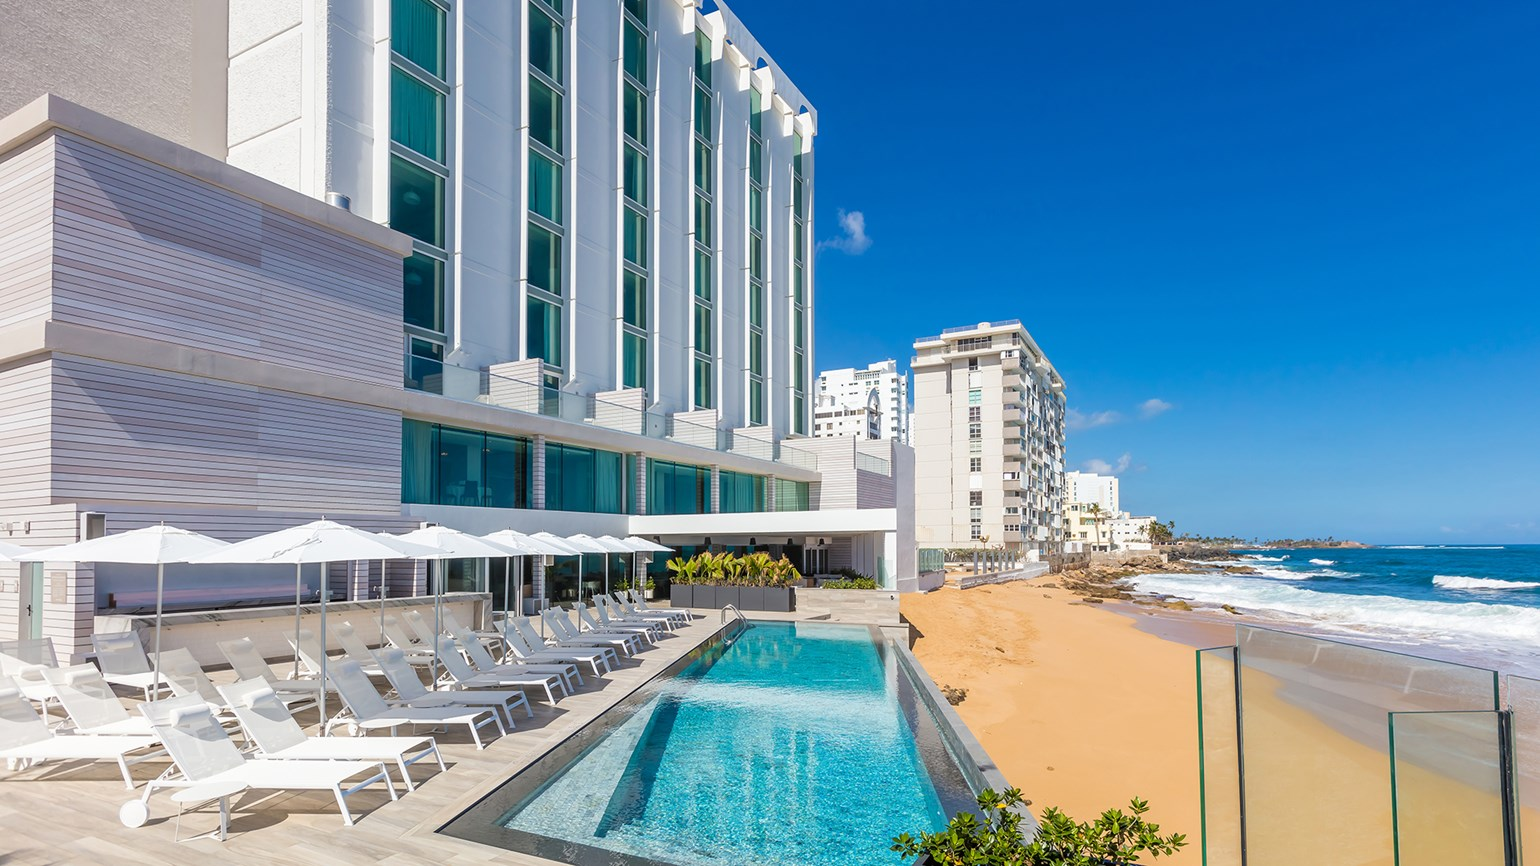 Puerto Rico welcomes its first new hotel of 2018